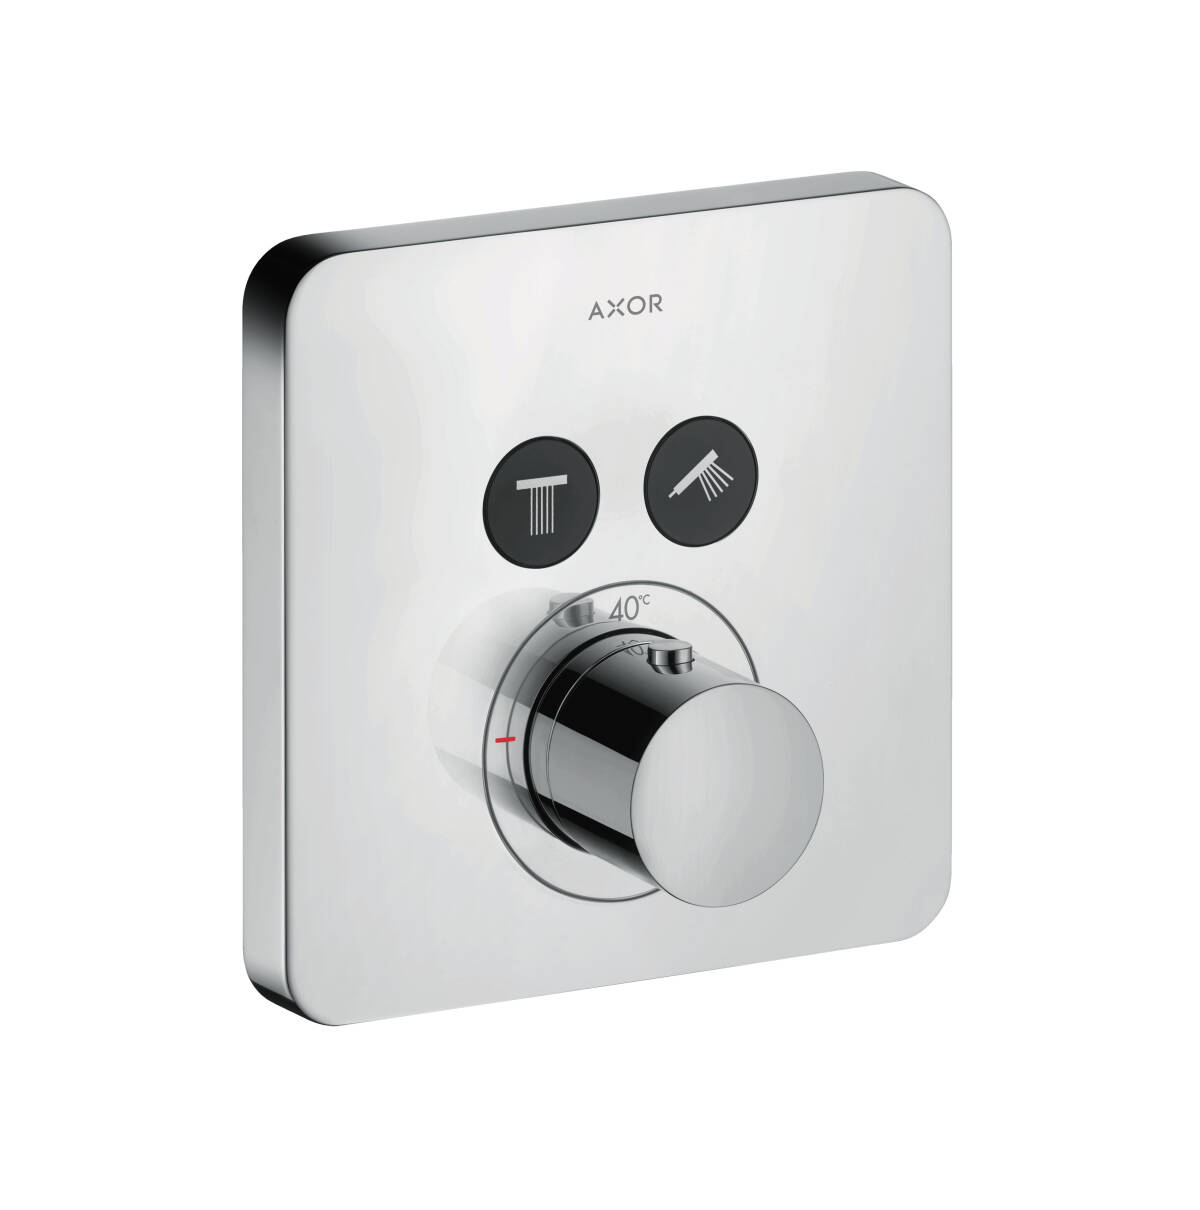 Thermostat for concealed installation softcube for 2 functions, Chrome, 36707000